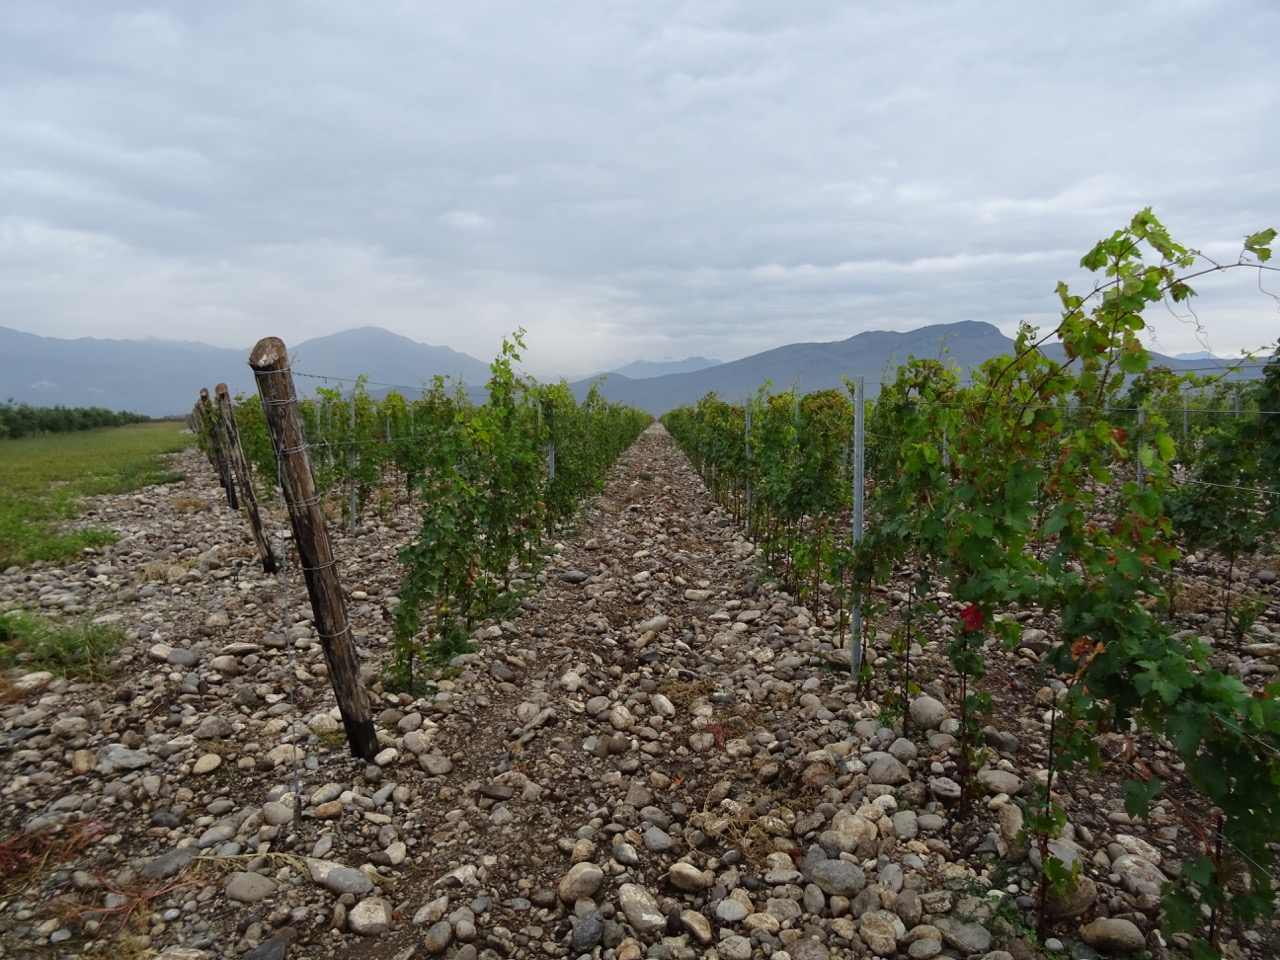 The Plantaze vineyard near Podgorica